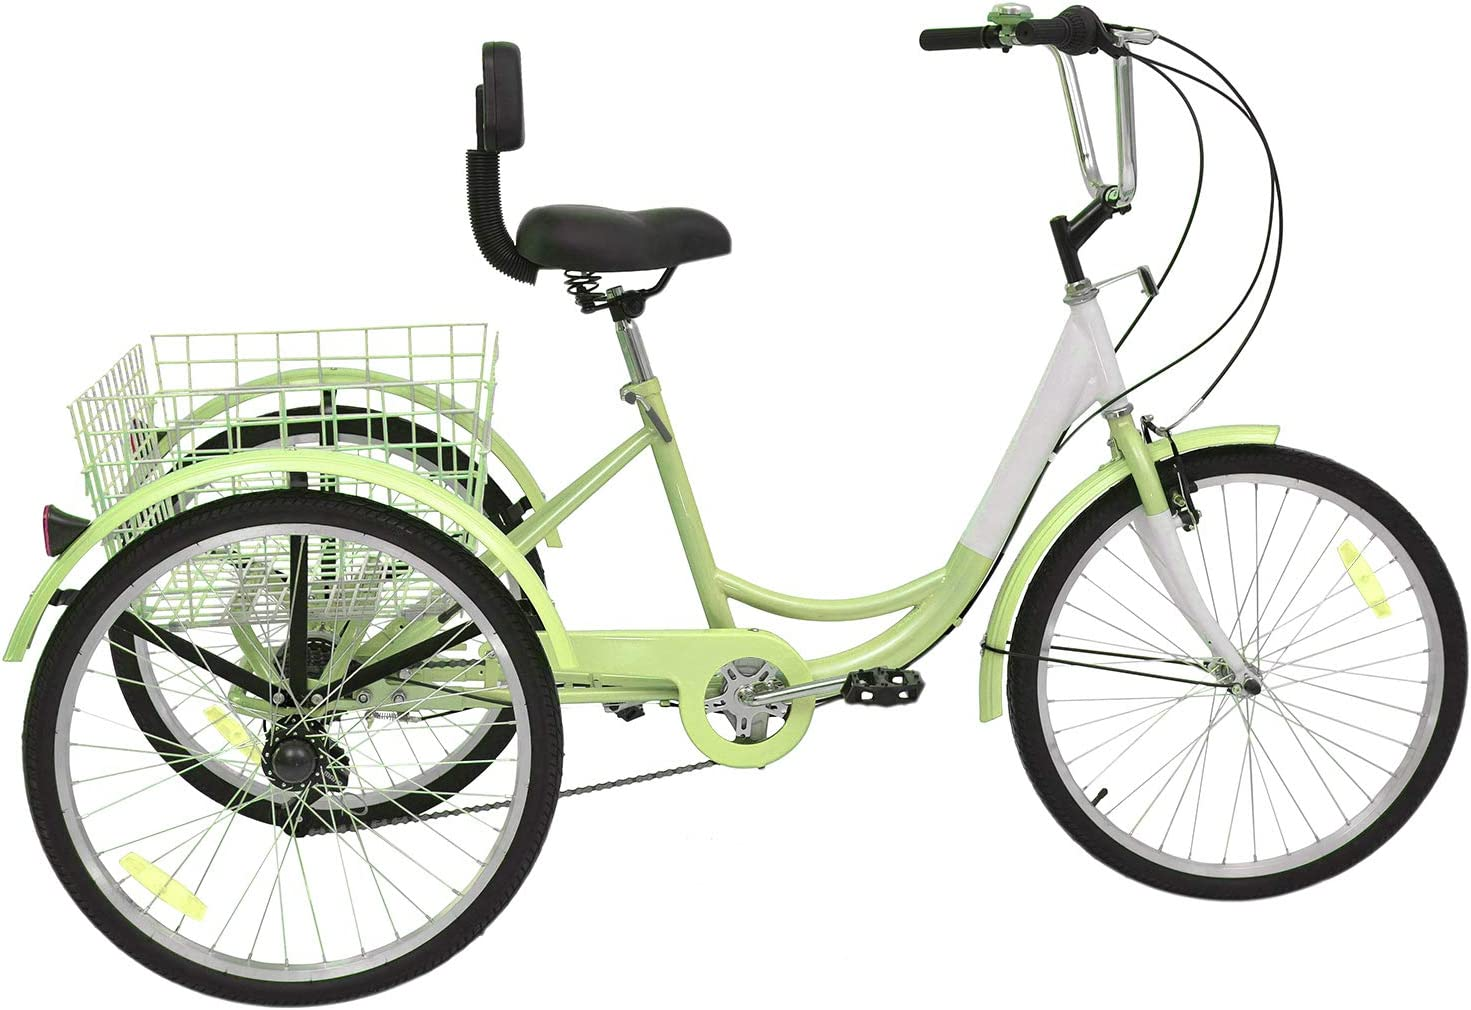 Slsy Adult Tricycles (7 Speed)